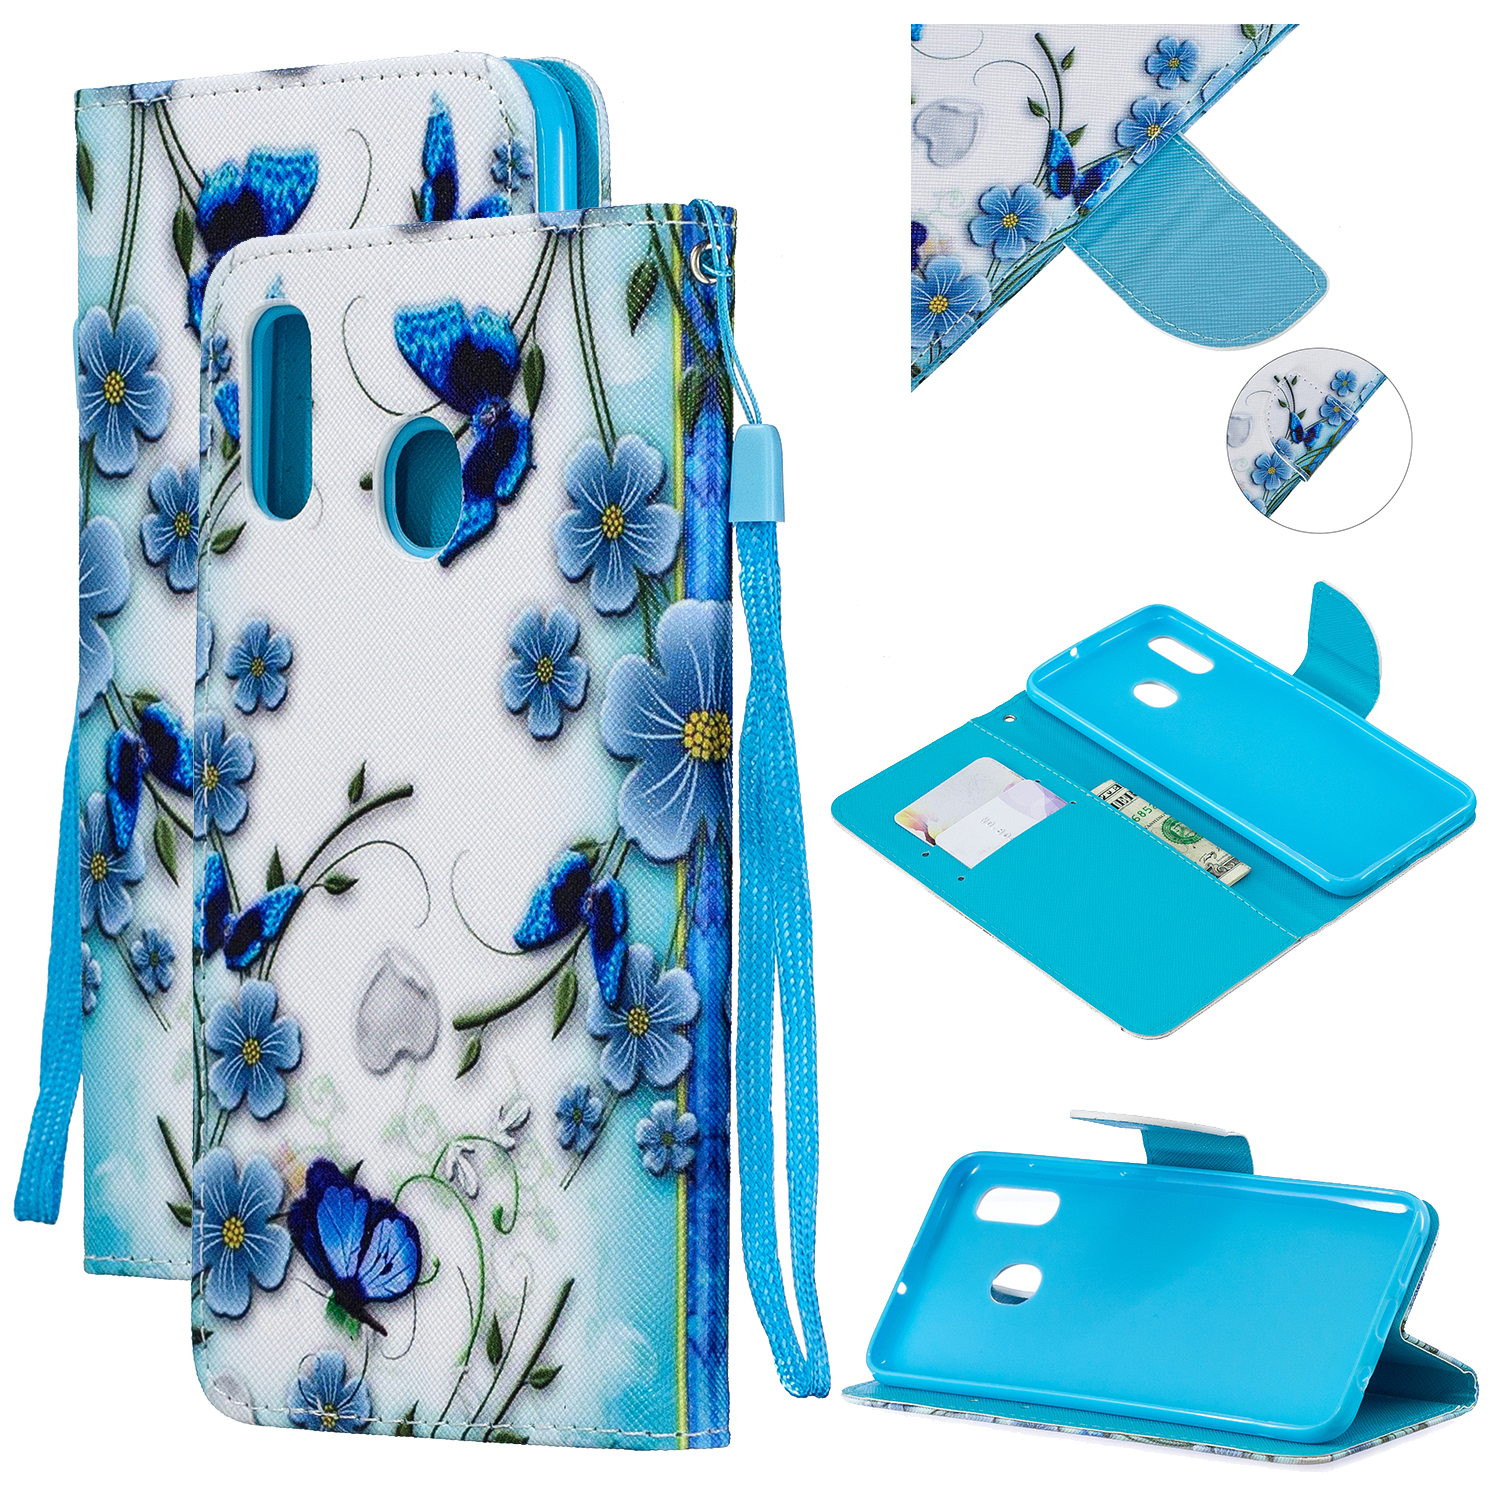 For Samsung A10/A20/A30 Smartphone Case PU Leather Wallet Design Cellphone Cover with Card Holder Stand Available Magic butterfly